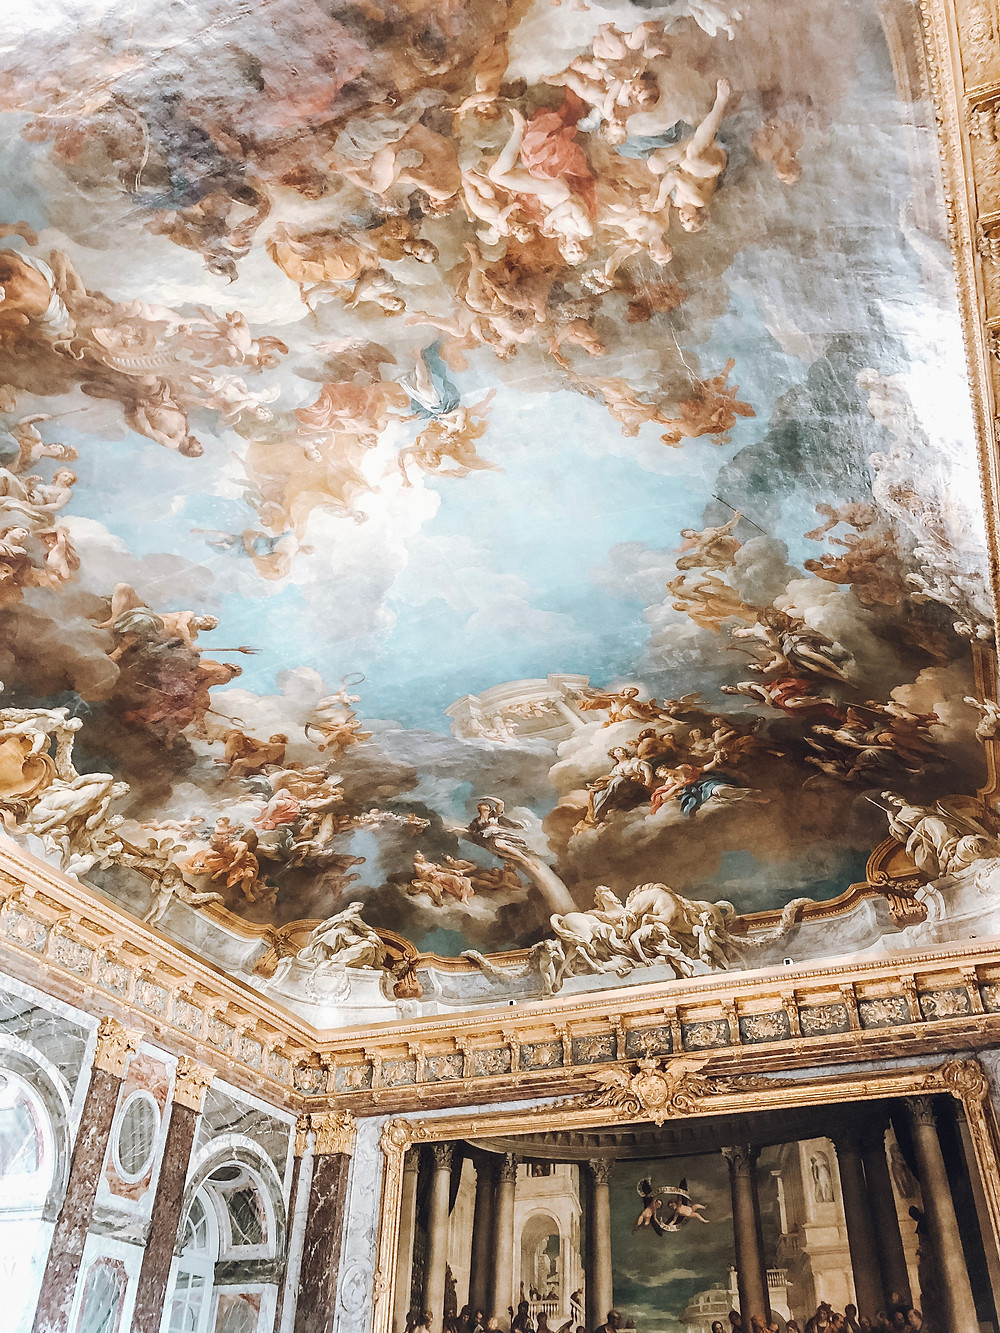 Room inside Palace of Versailles